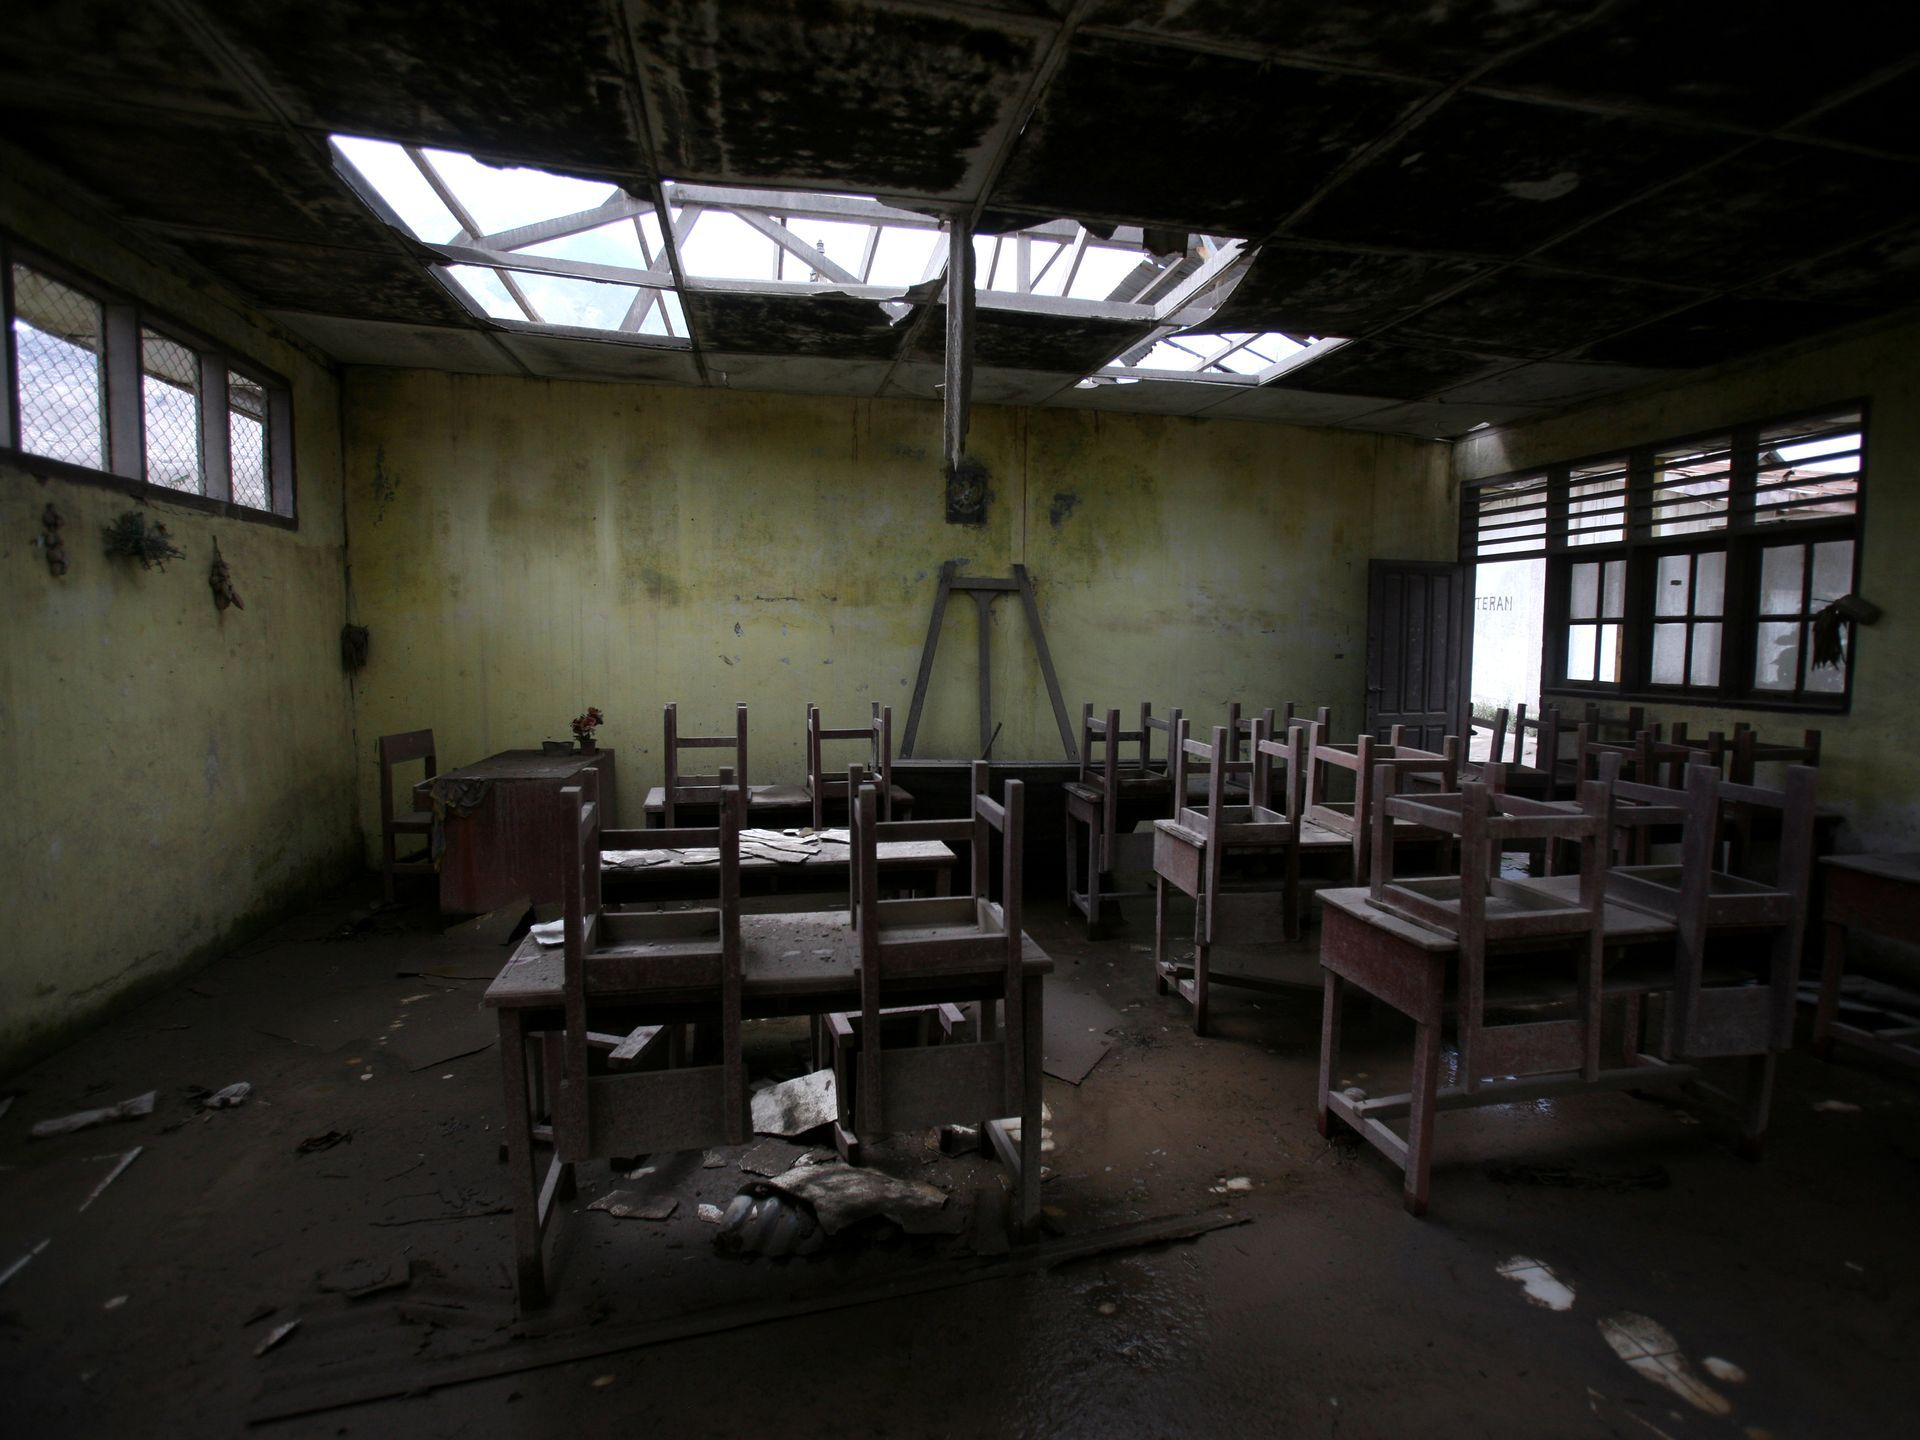 Chairs Rest On Tables In An Empty Classroom At Elementary